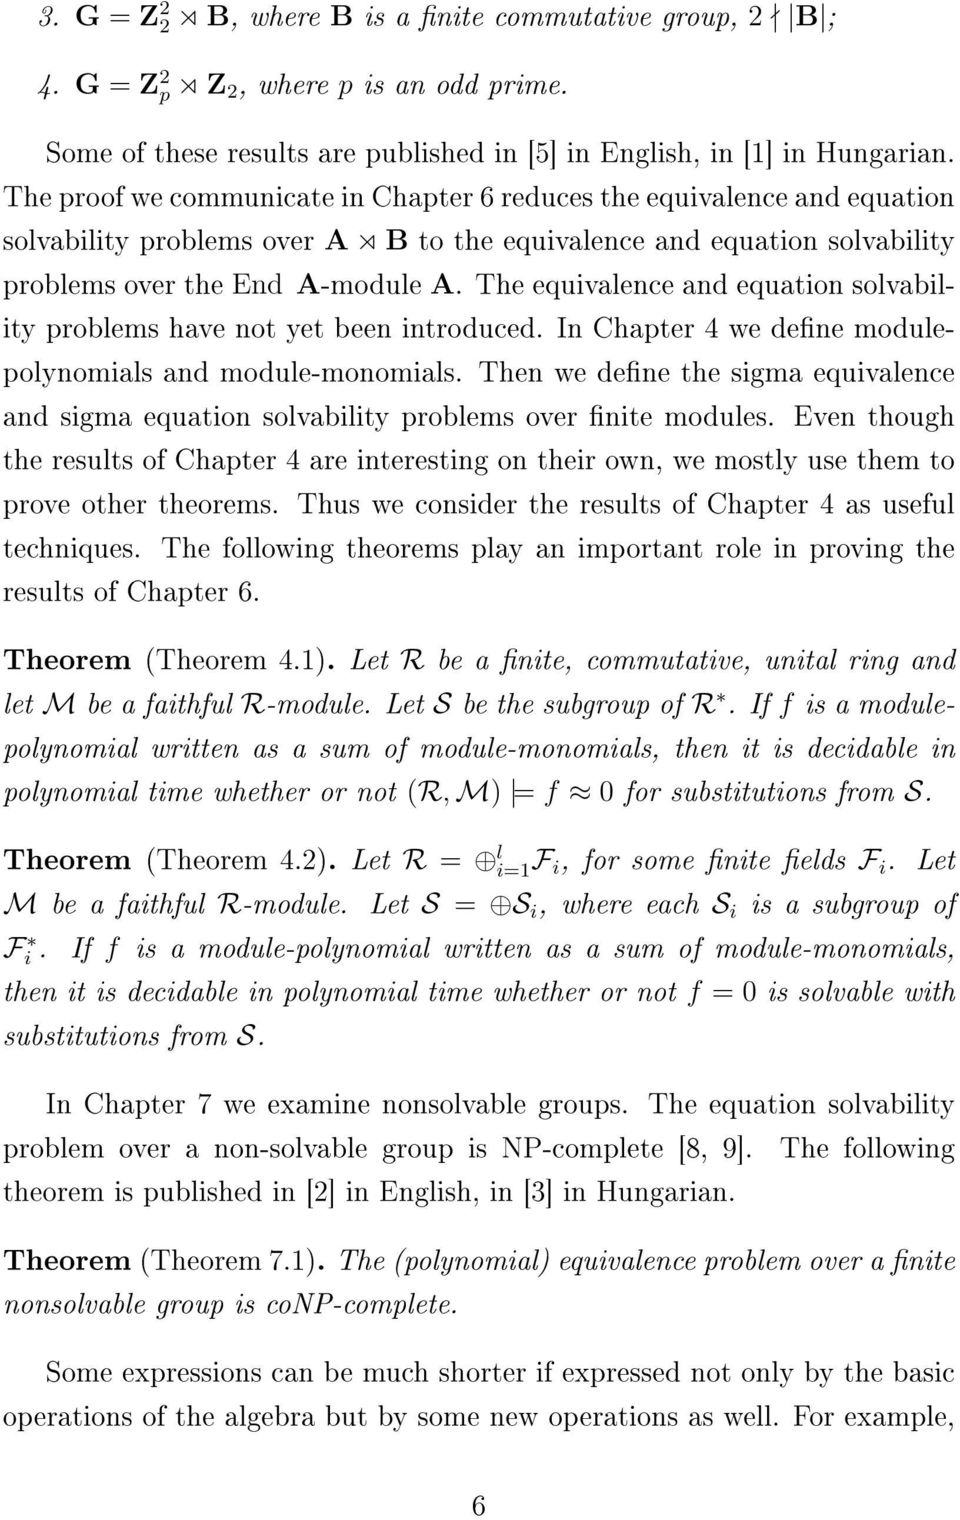 The equivalence and equation solvability problems have not yet been introduced. In Chapter 4 we dene modulepolynomials and module-monomials.